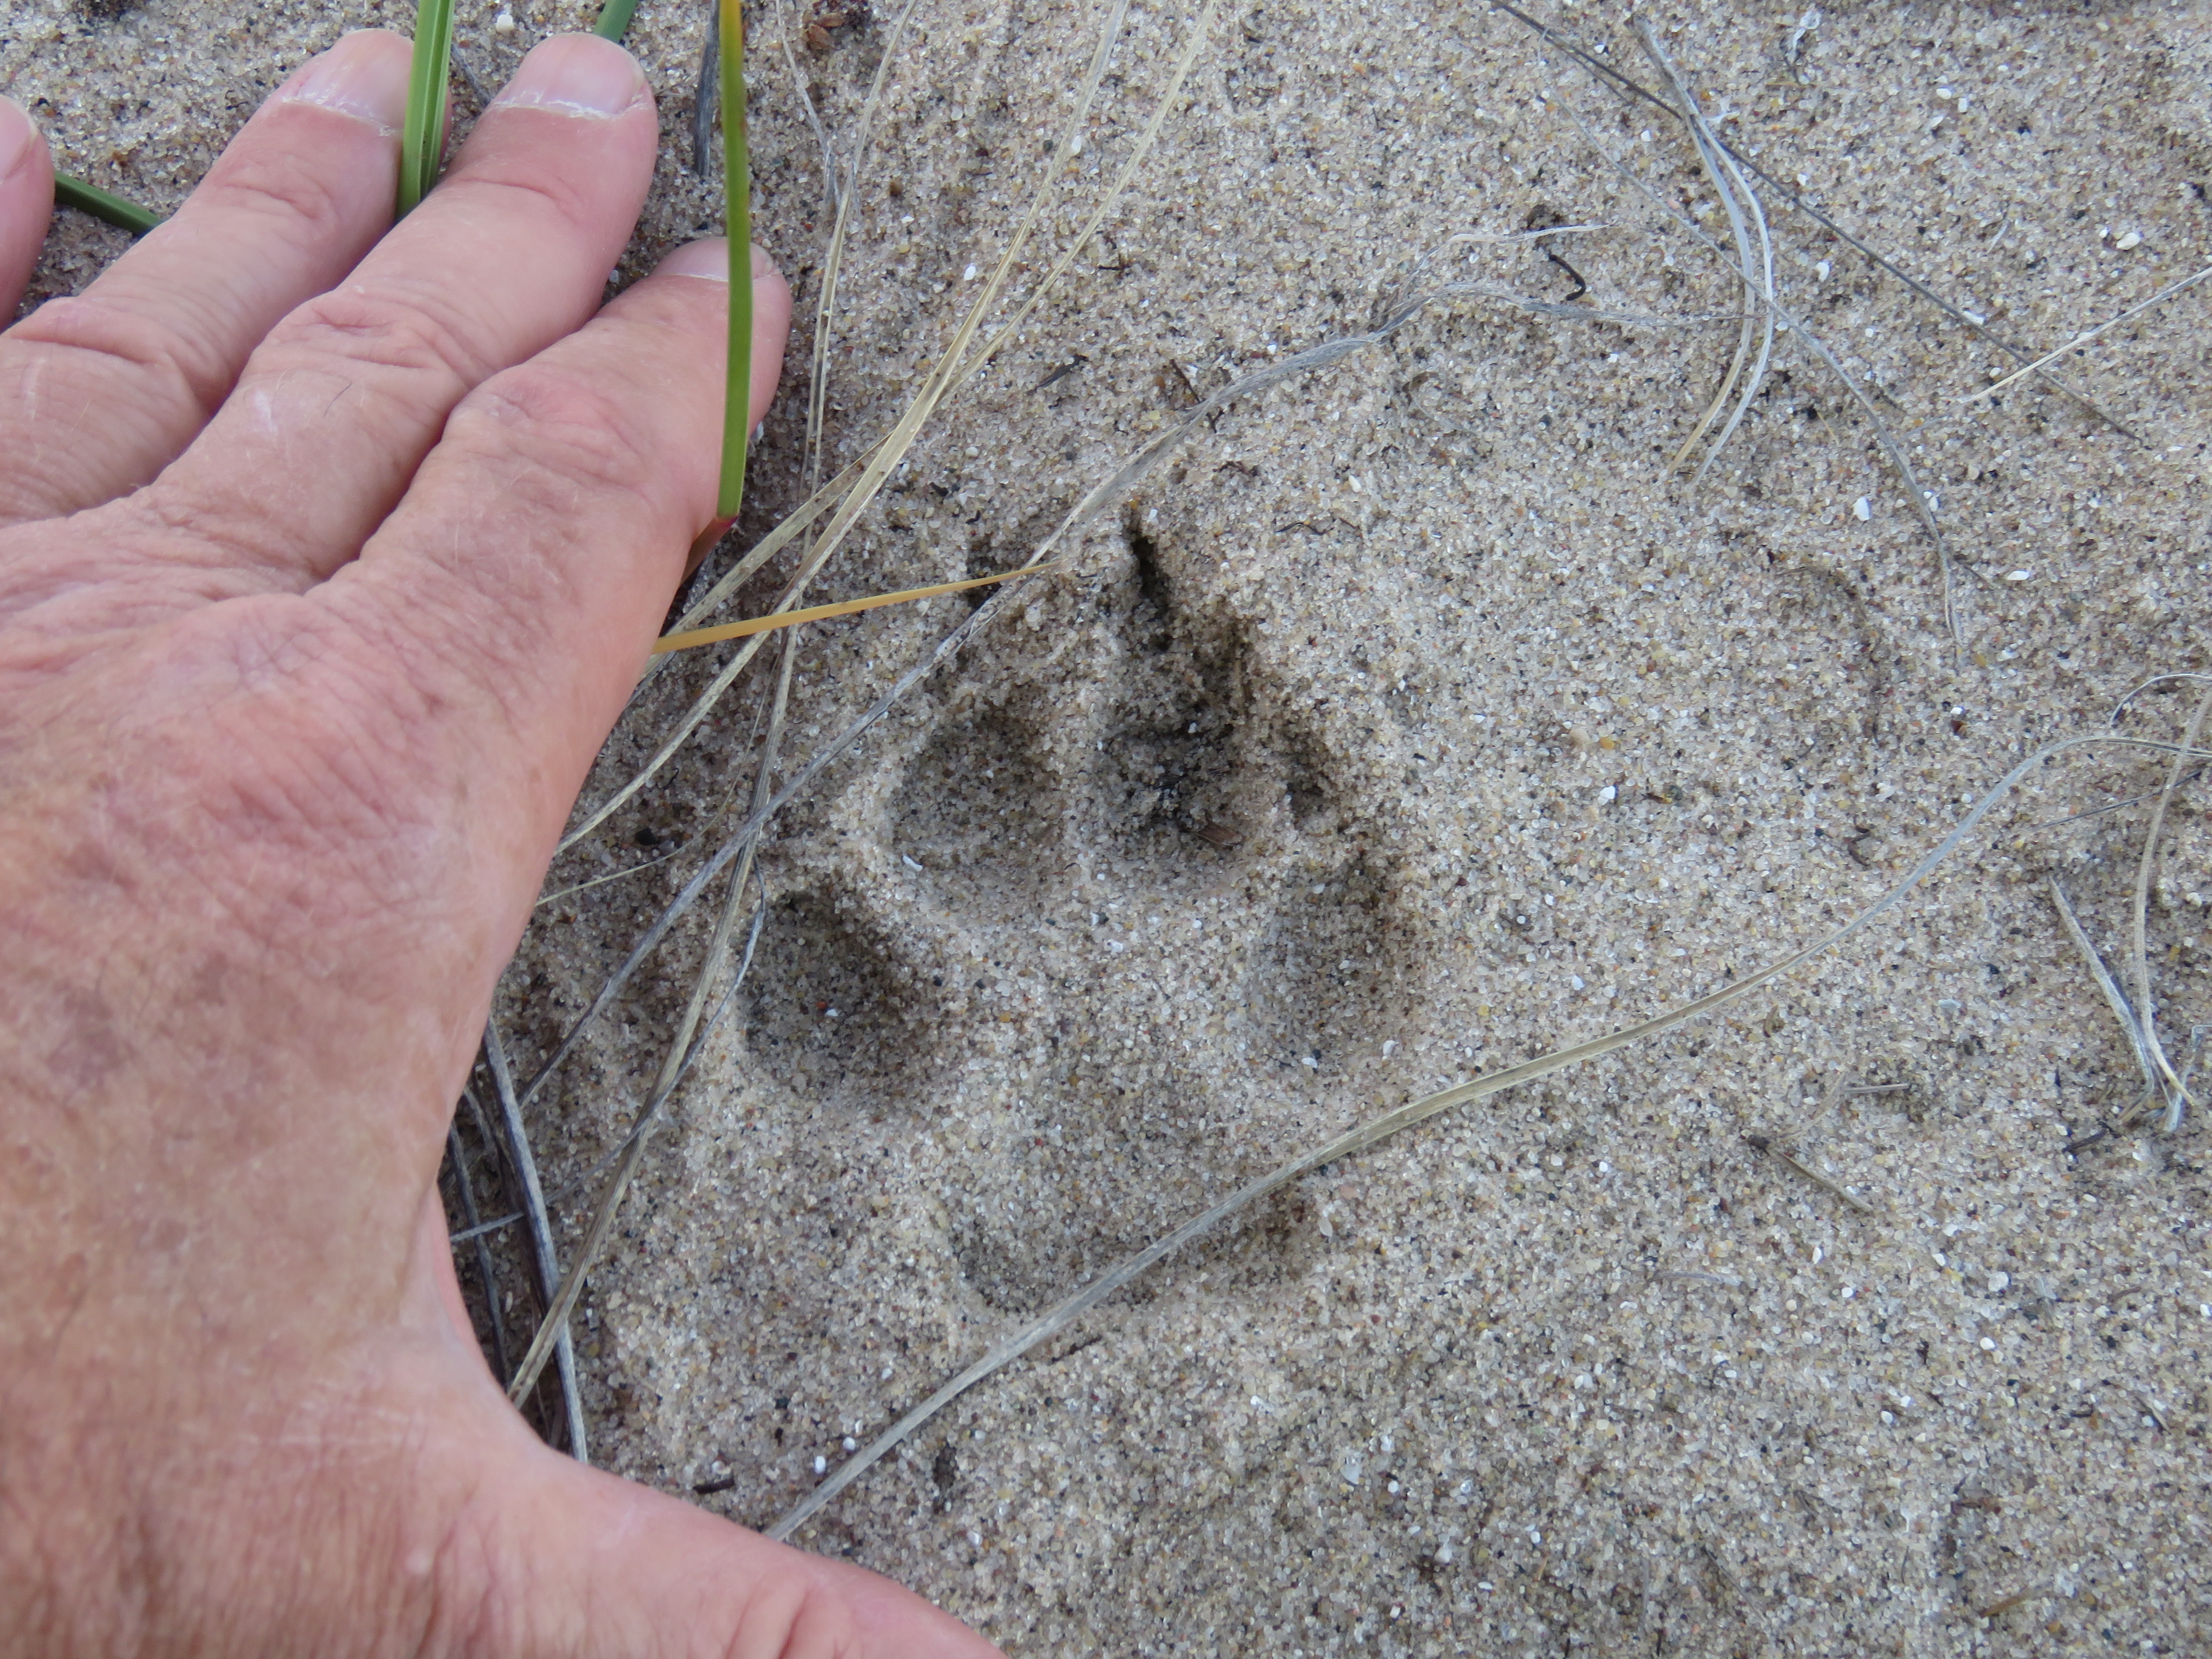 coyote track in sand